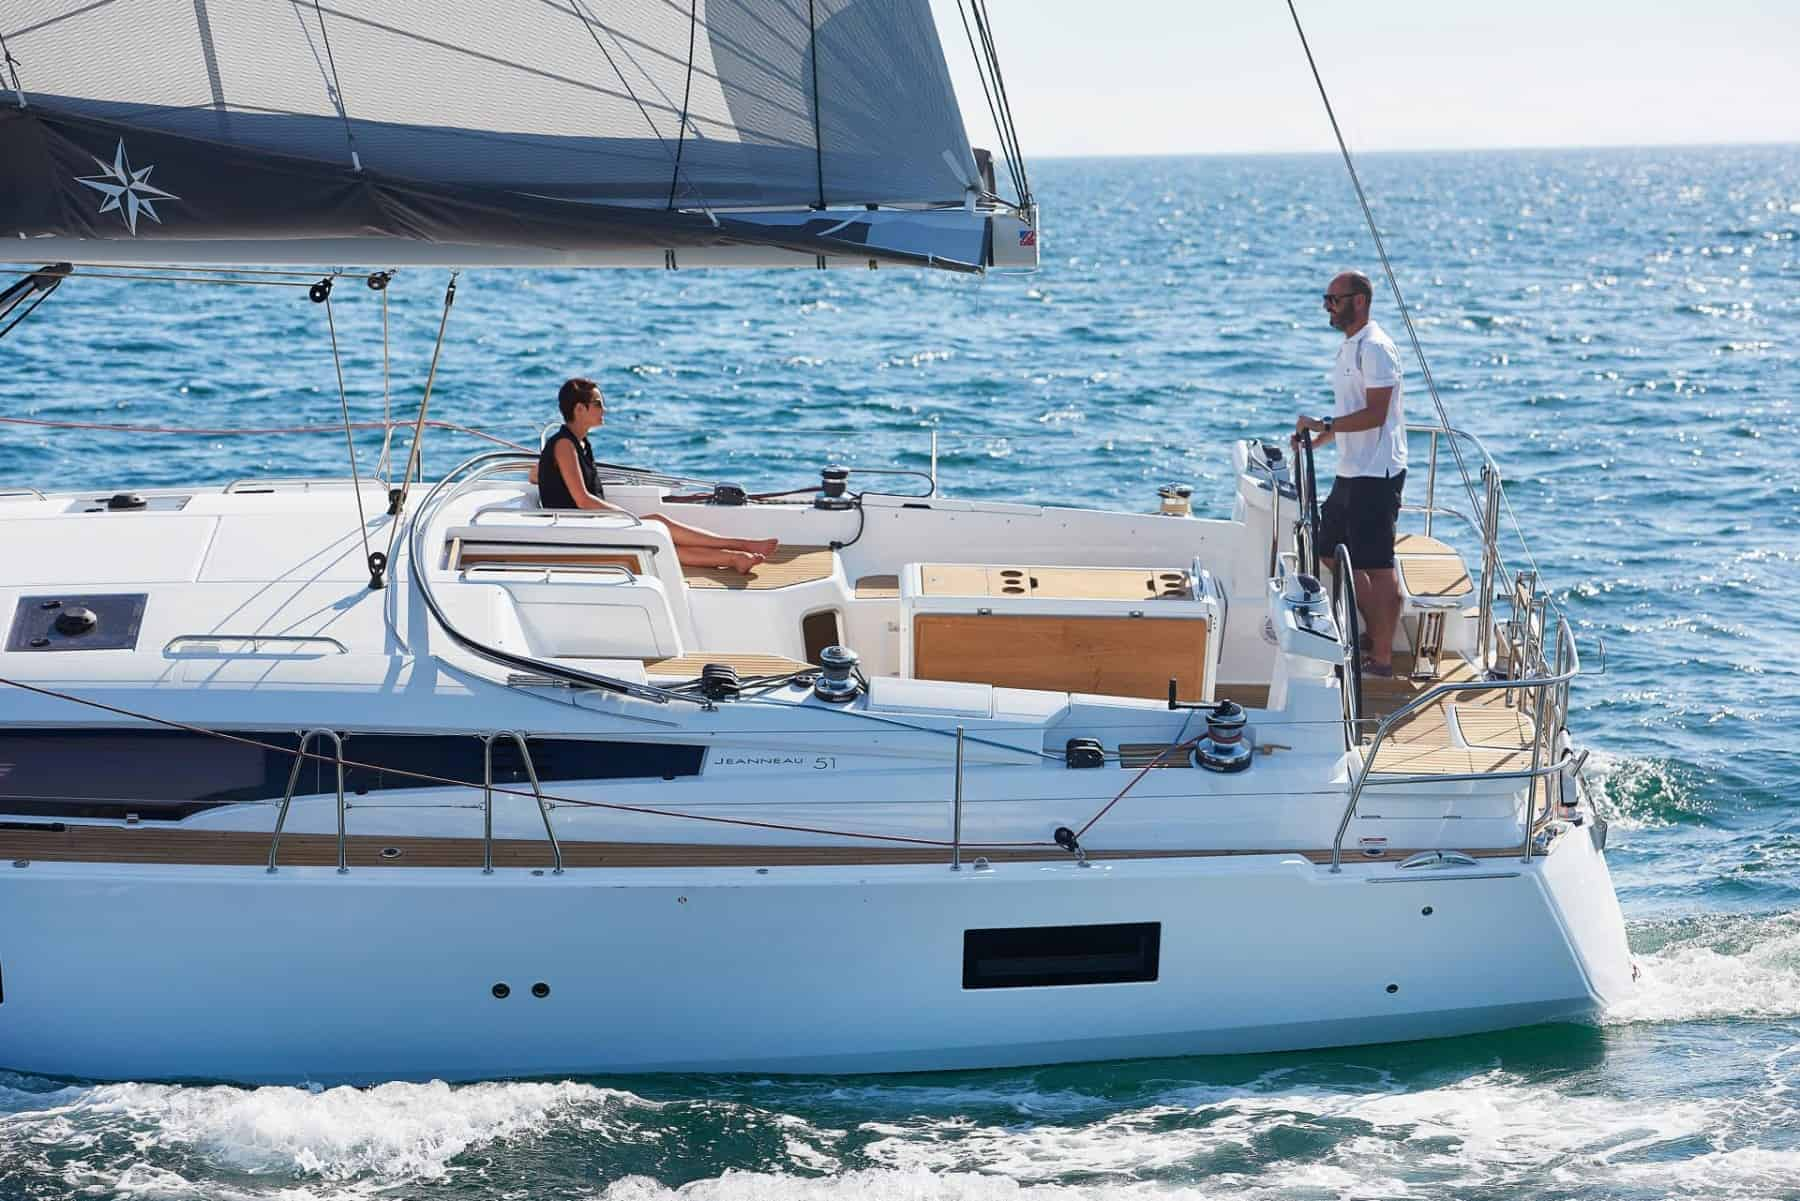 Jeanneau-51-exterior-6-charter-ownership-yacht